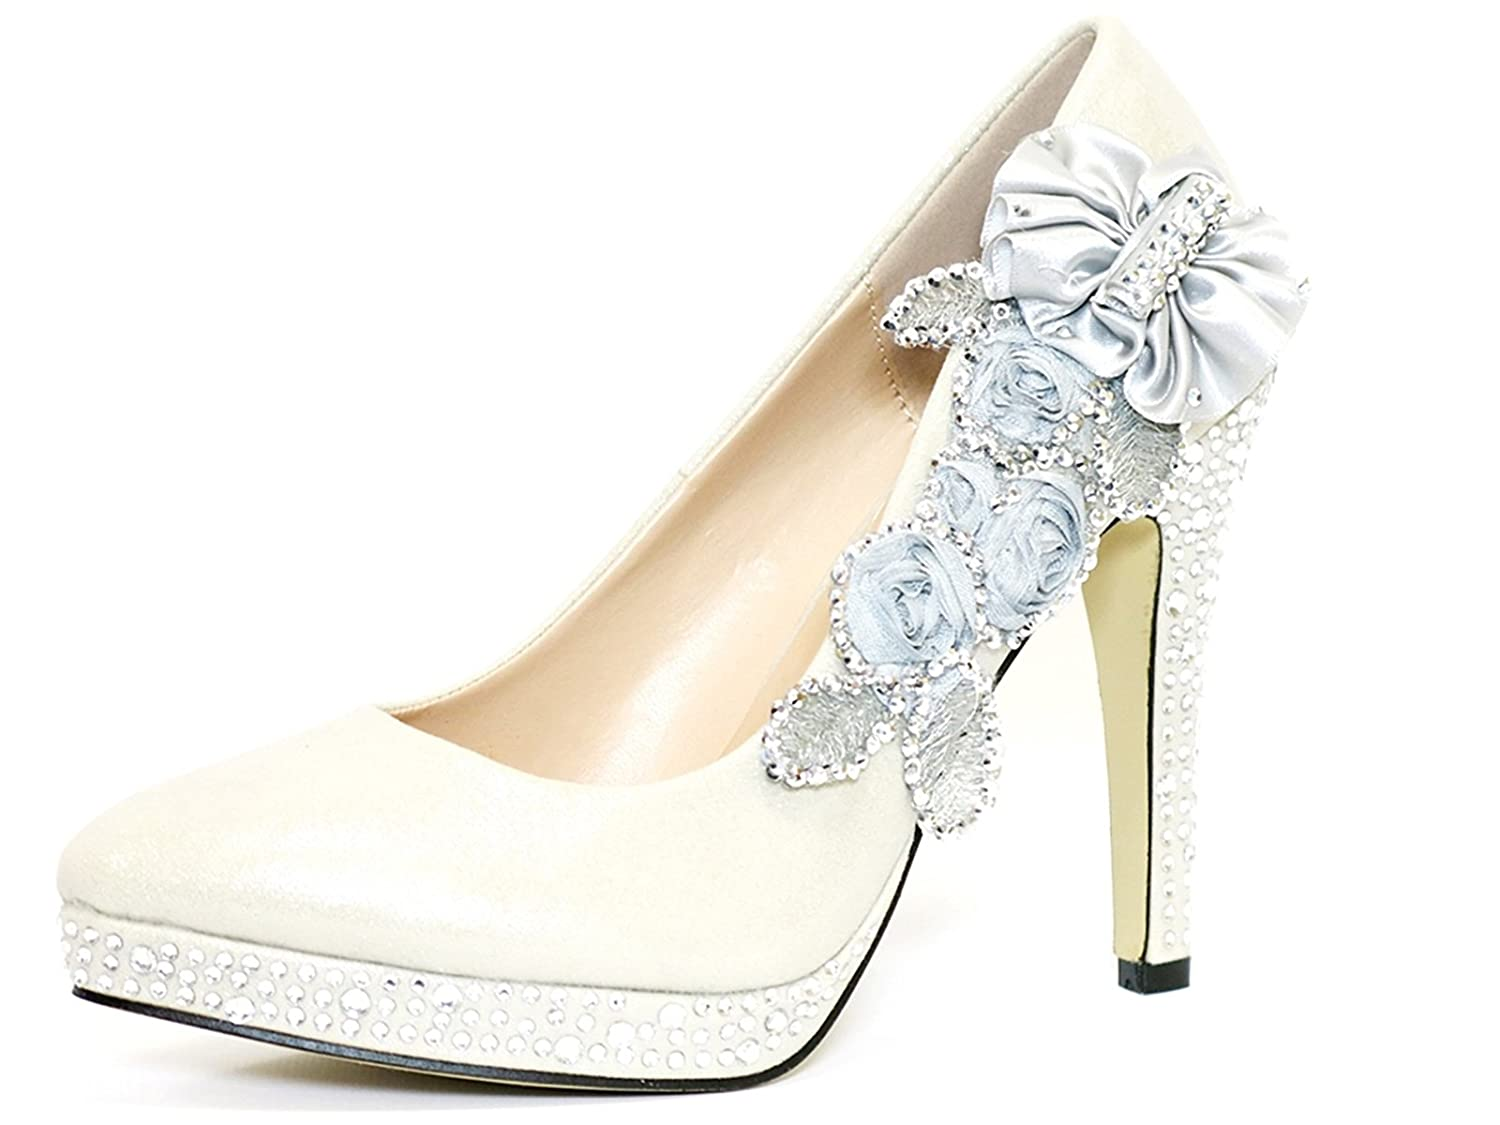 a3972dd7a11d Ktc Women s Glitter Gorgeous Crystal Wedding High Heel Shoes  Amazon.co.uk   Shoes   Bags